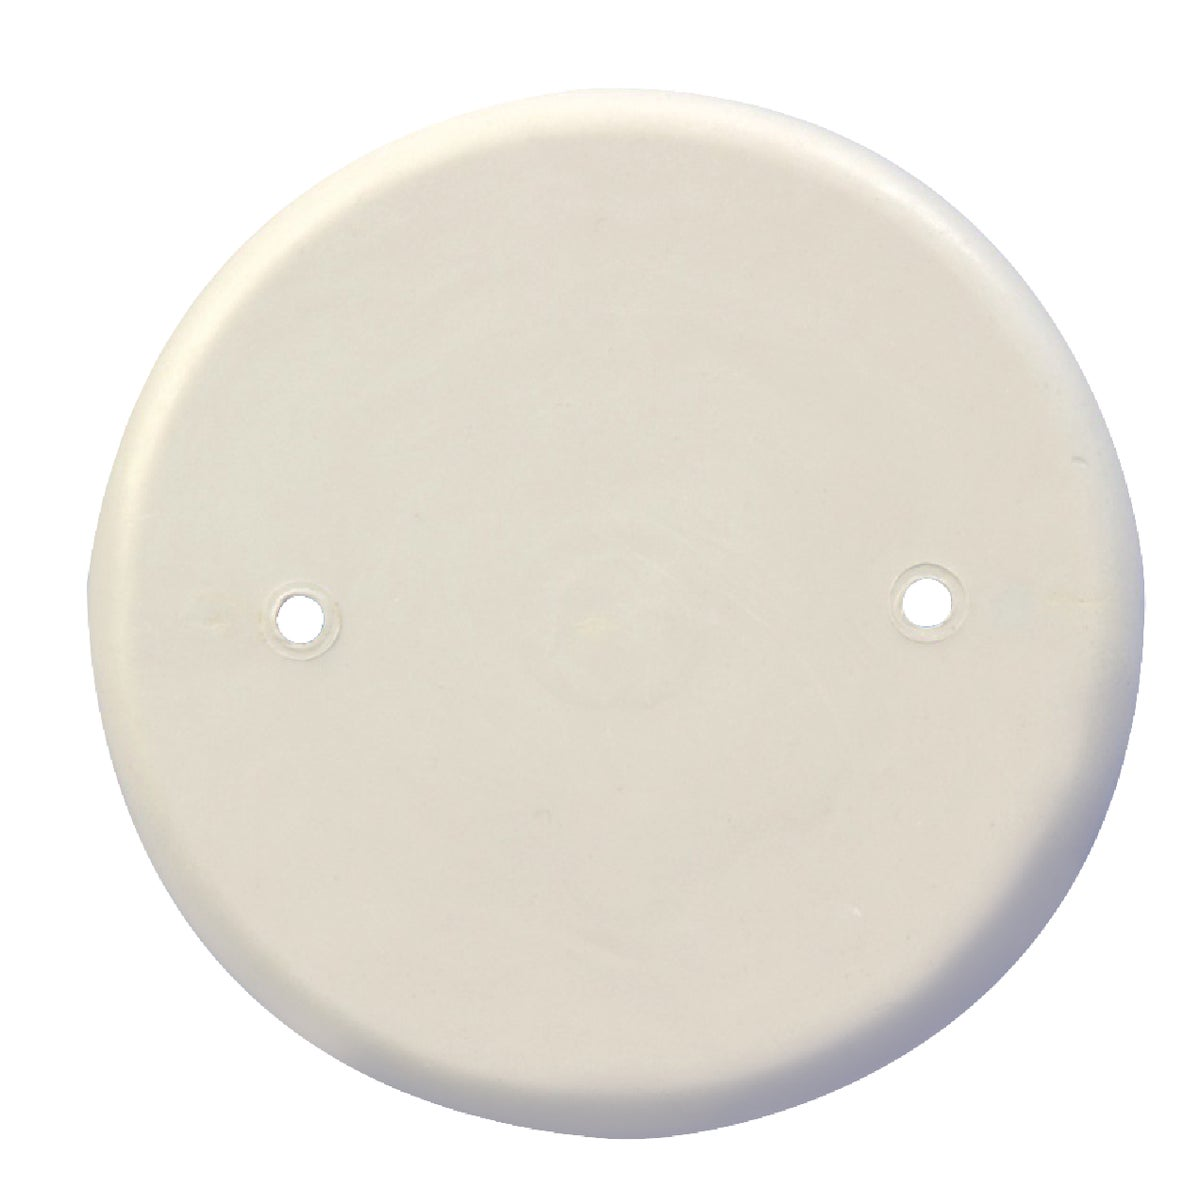 ROUND FIBERGLASS COVER - 9315 by Allied Moulded